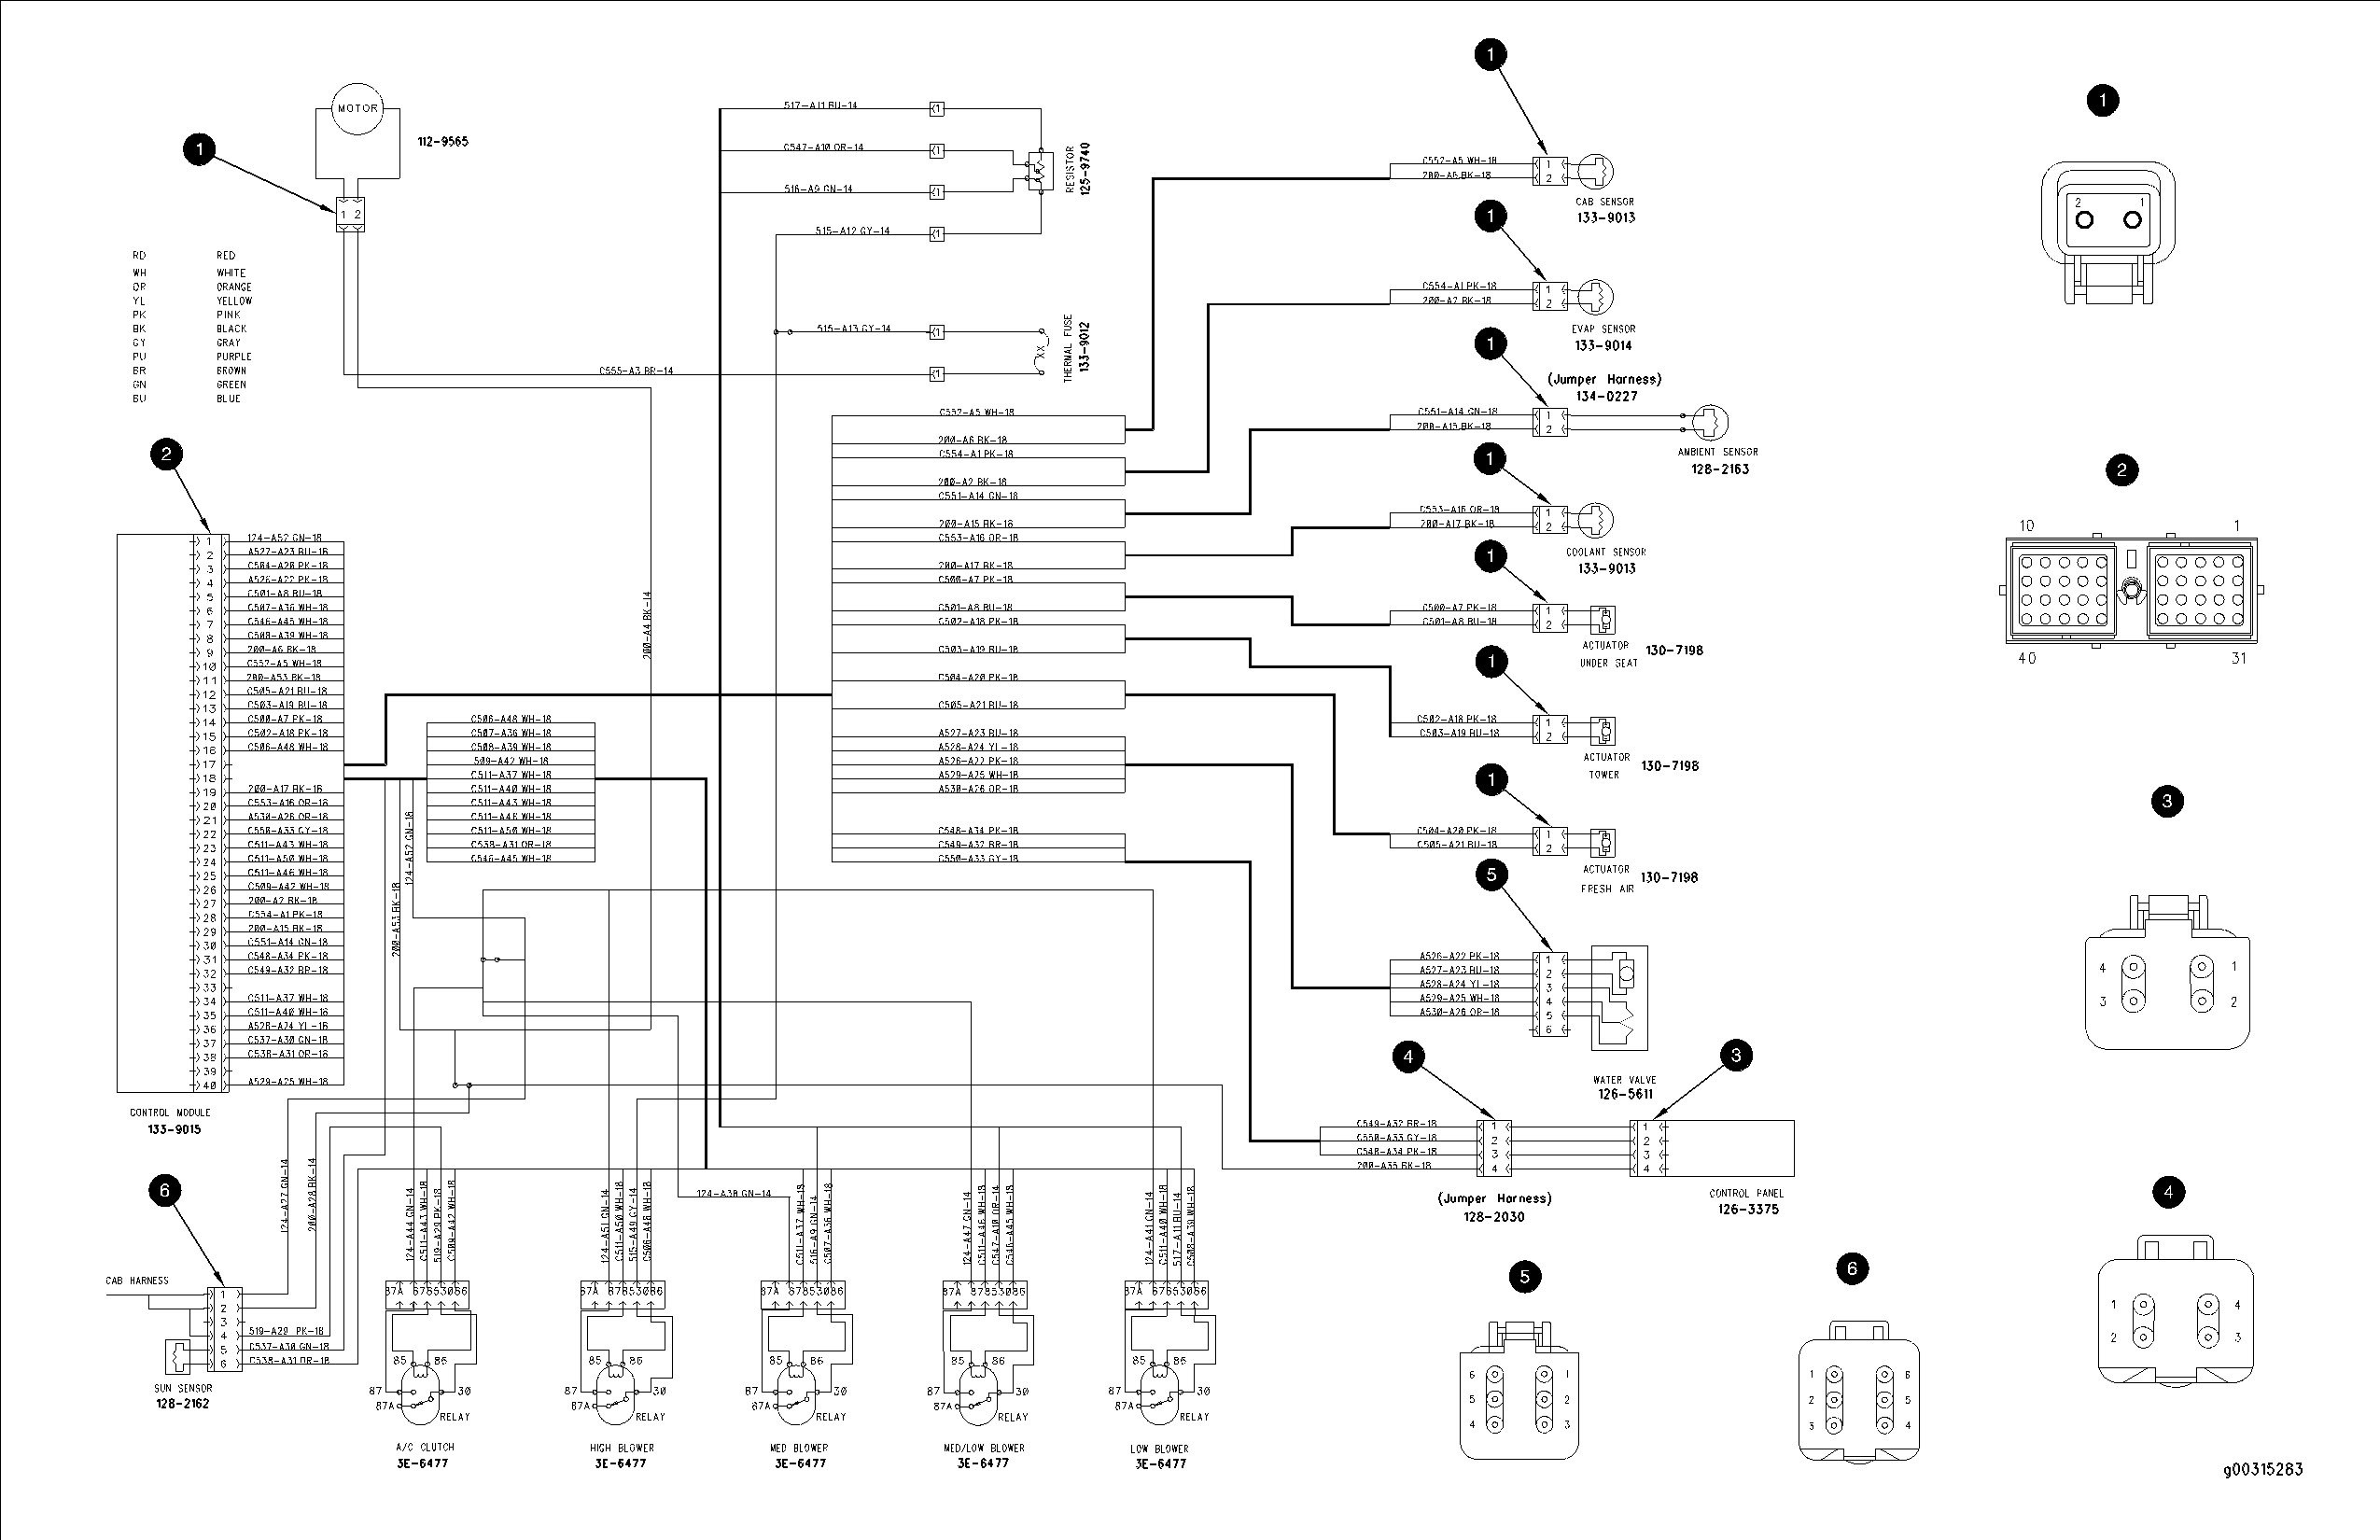 [DIAGRAM] 3408 Cat Engine Diagram For Wiring FULL Version